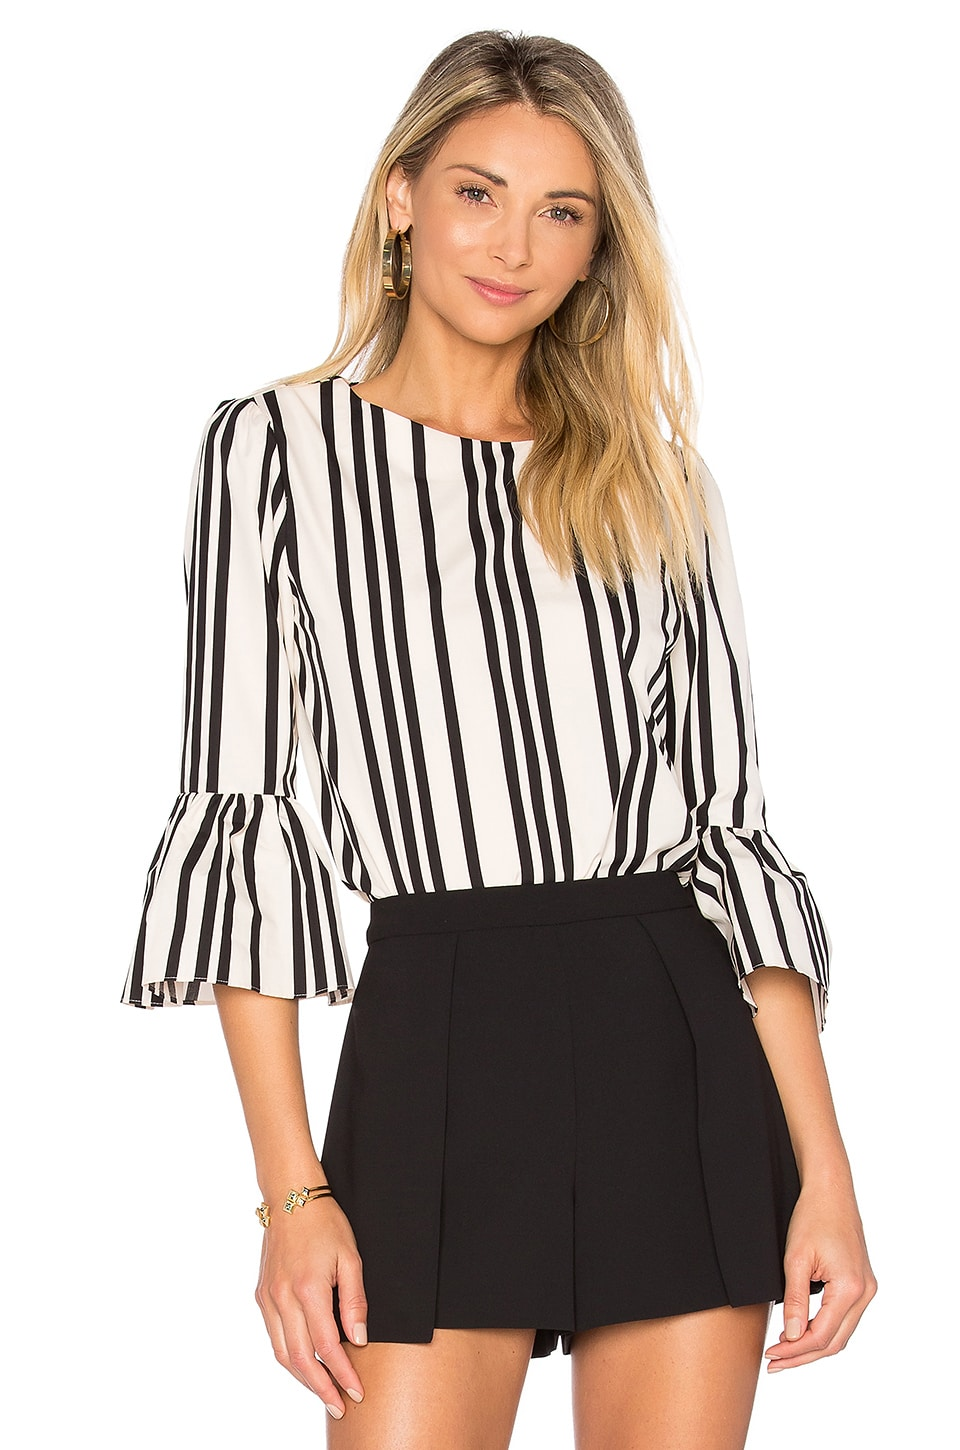 Alice + Olivia Bernice Top in Variegated Stripe